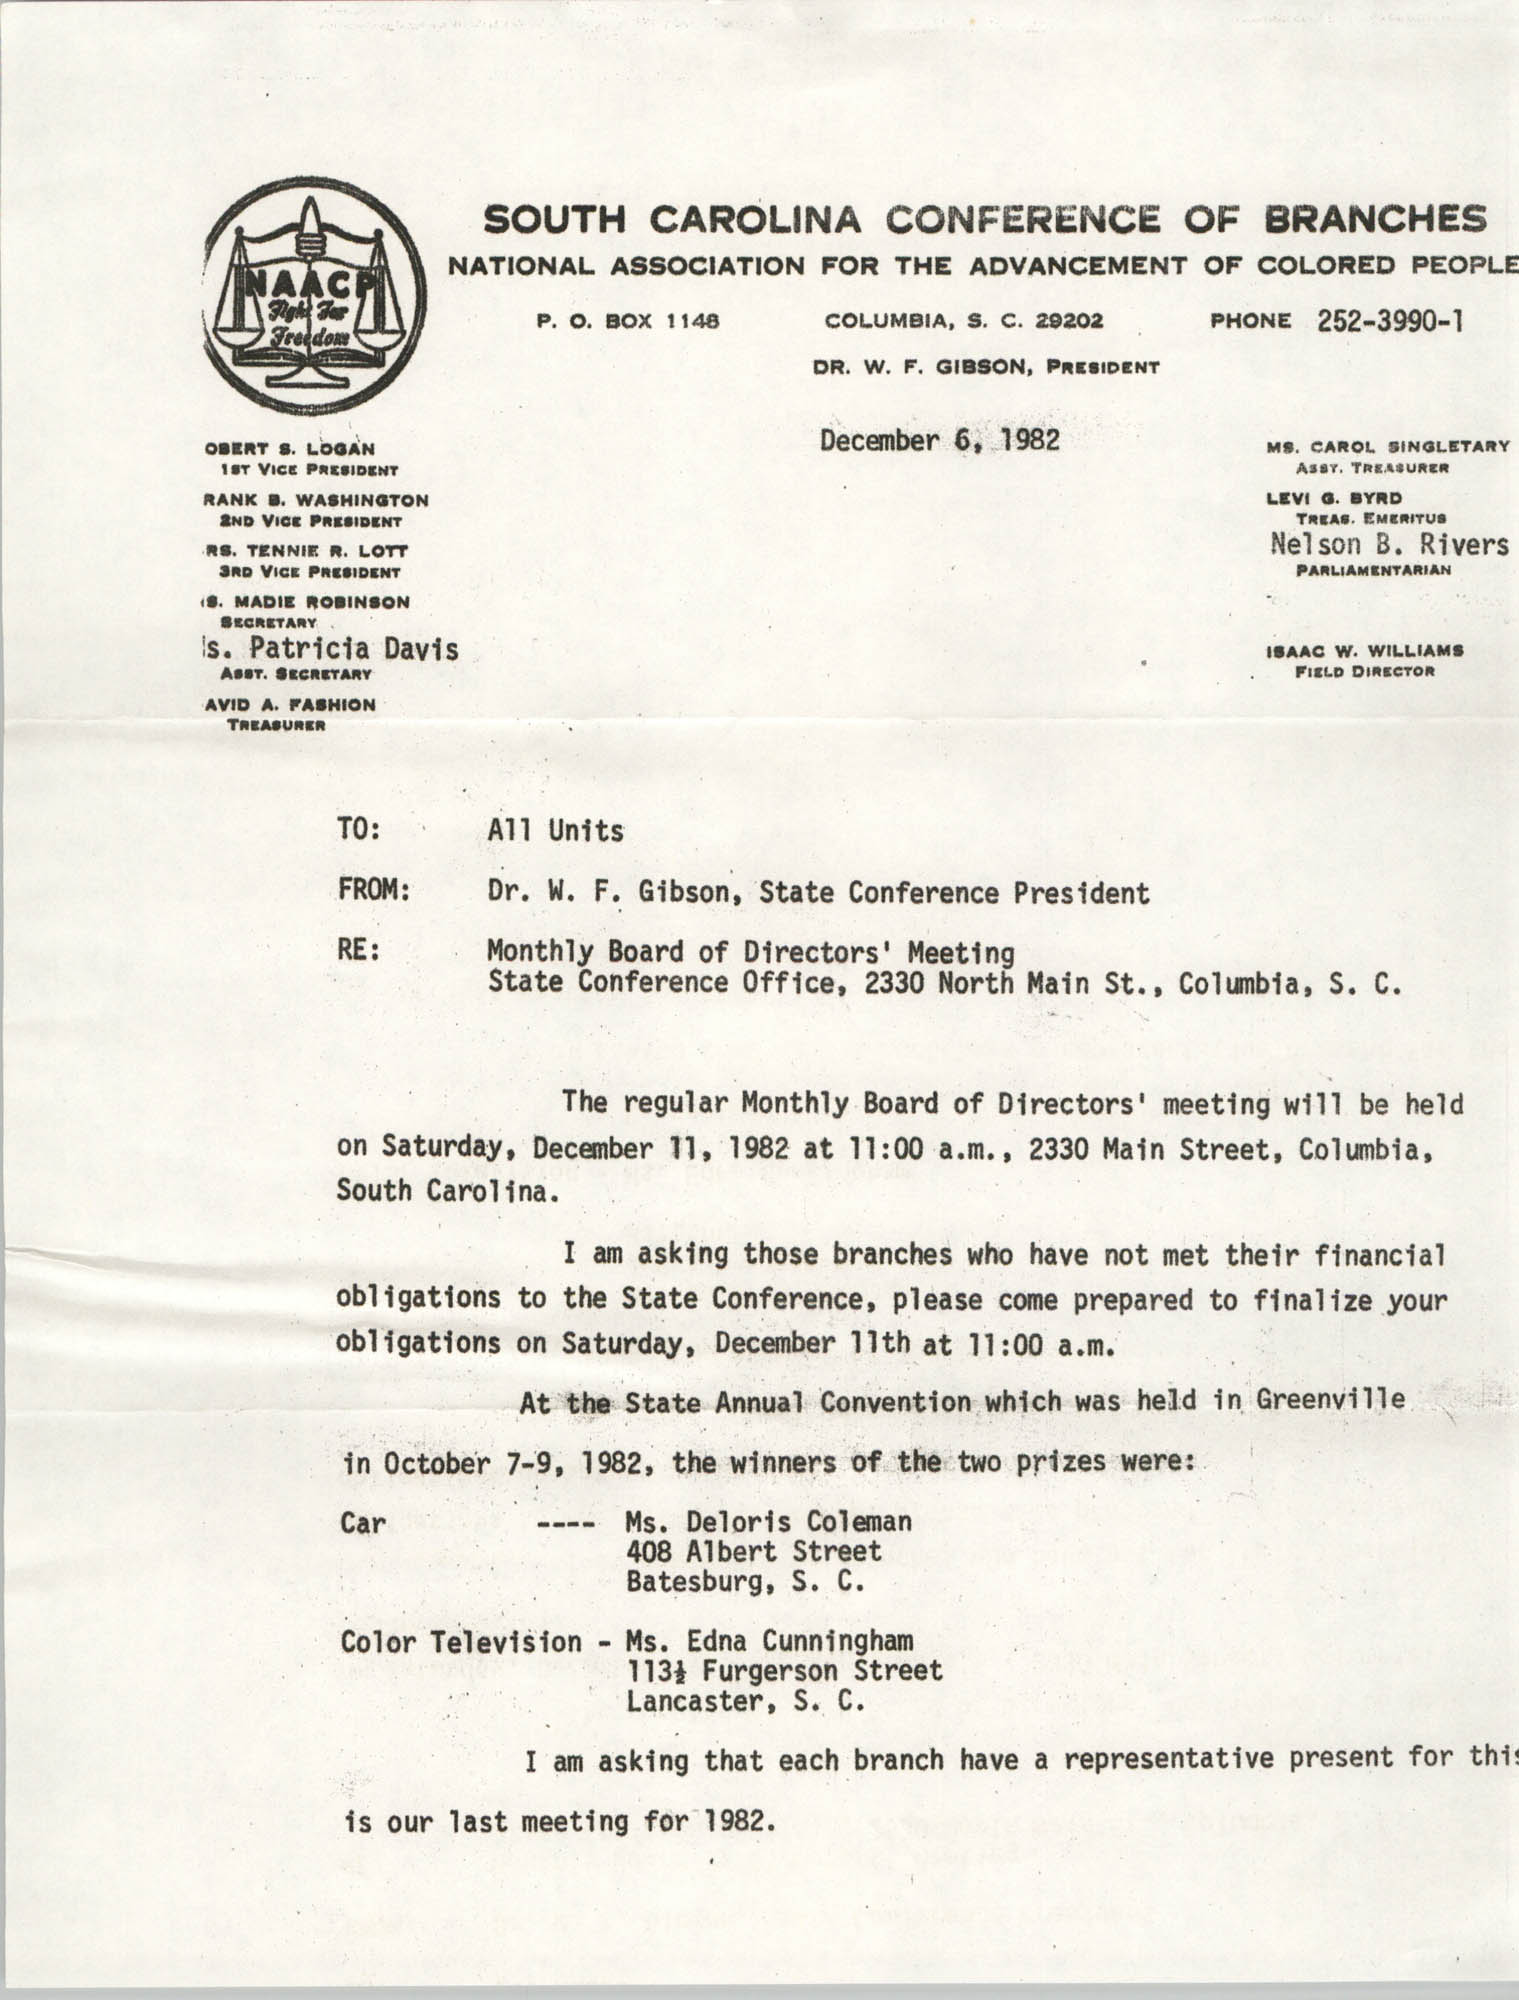 South Carolina Conference of Branches of the NAACP Memorandum, December 6, 1982